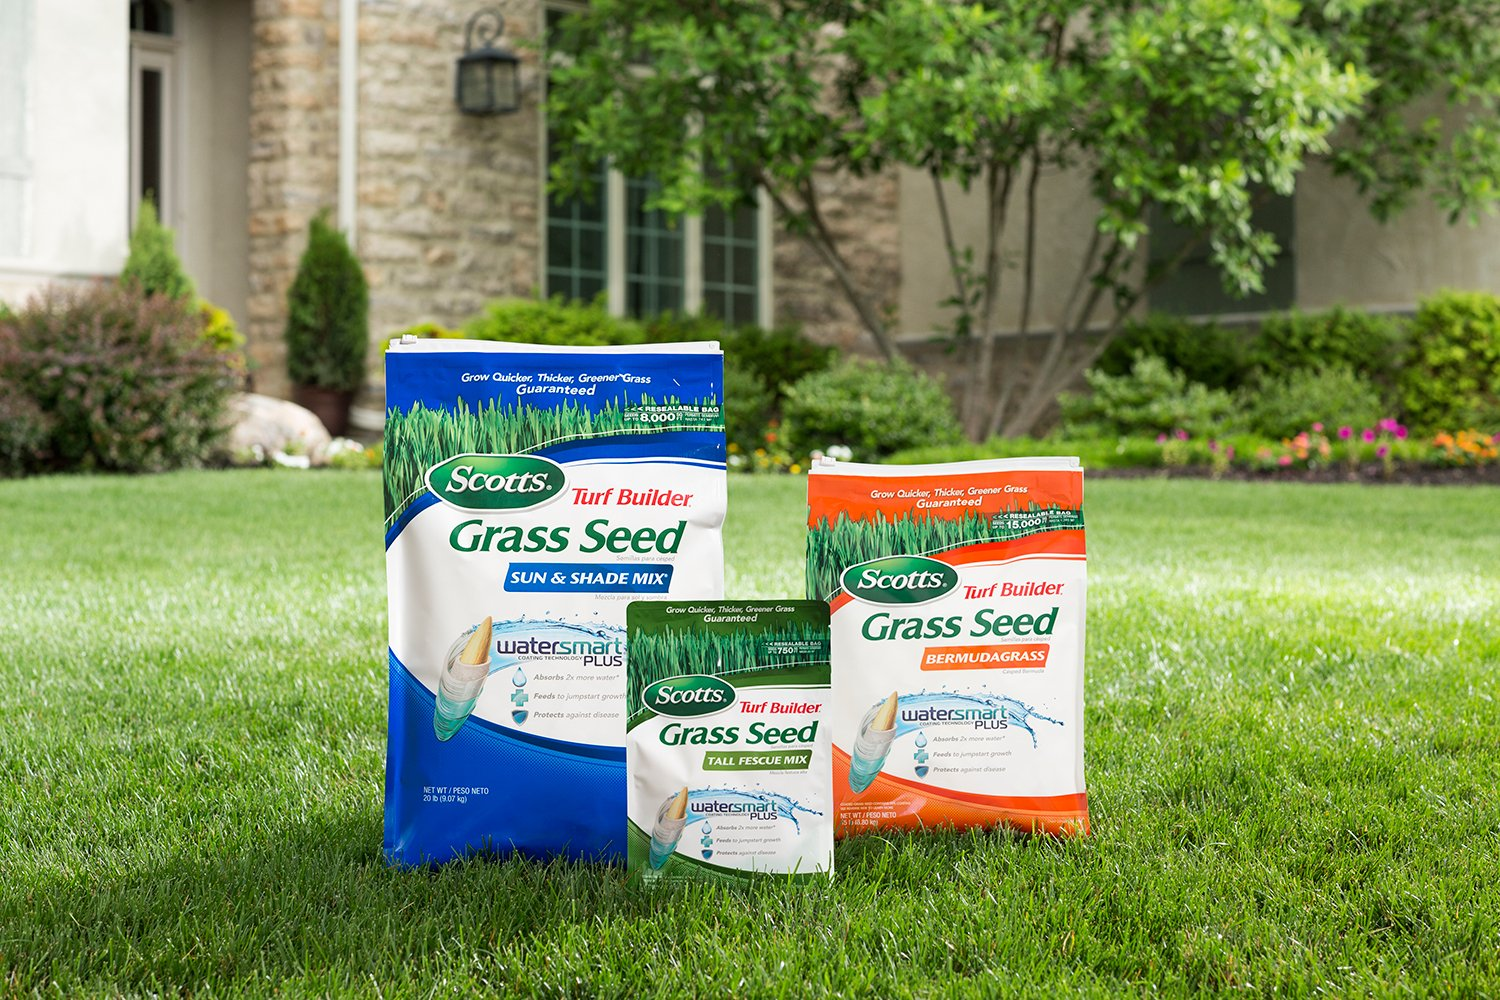 Best Grass Seed - My choice